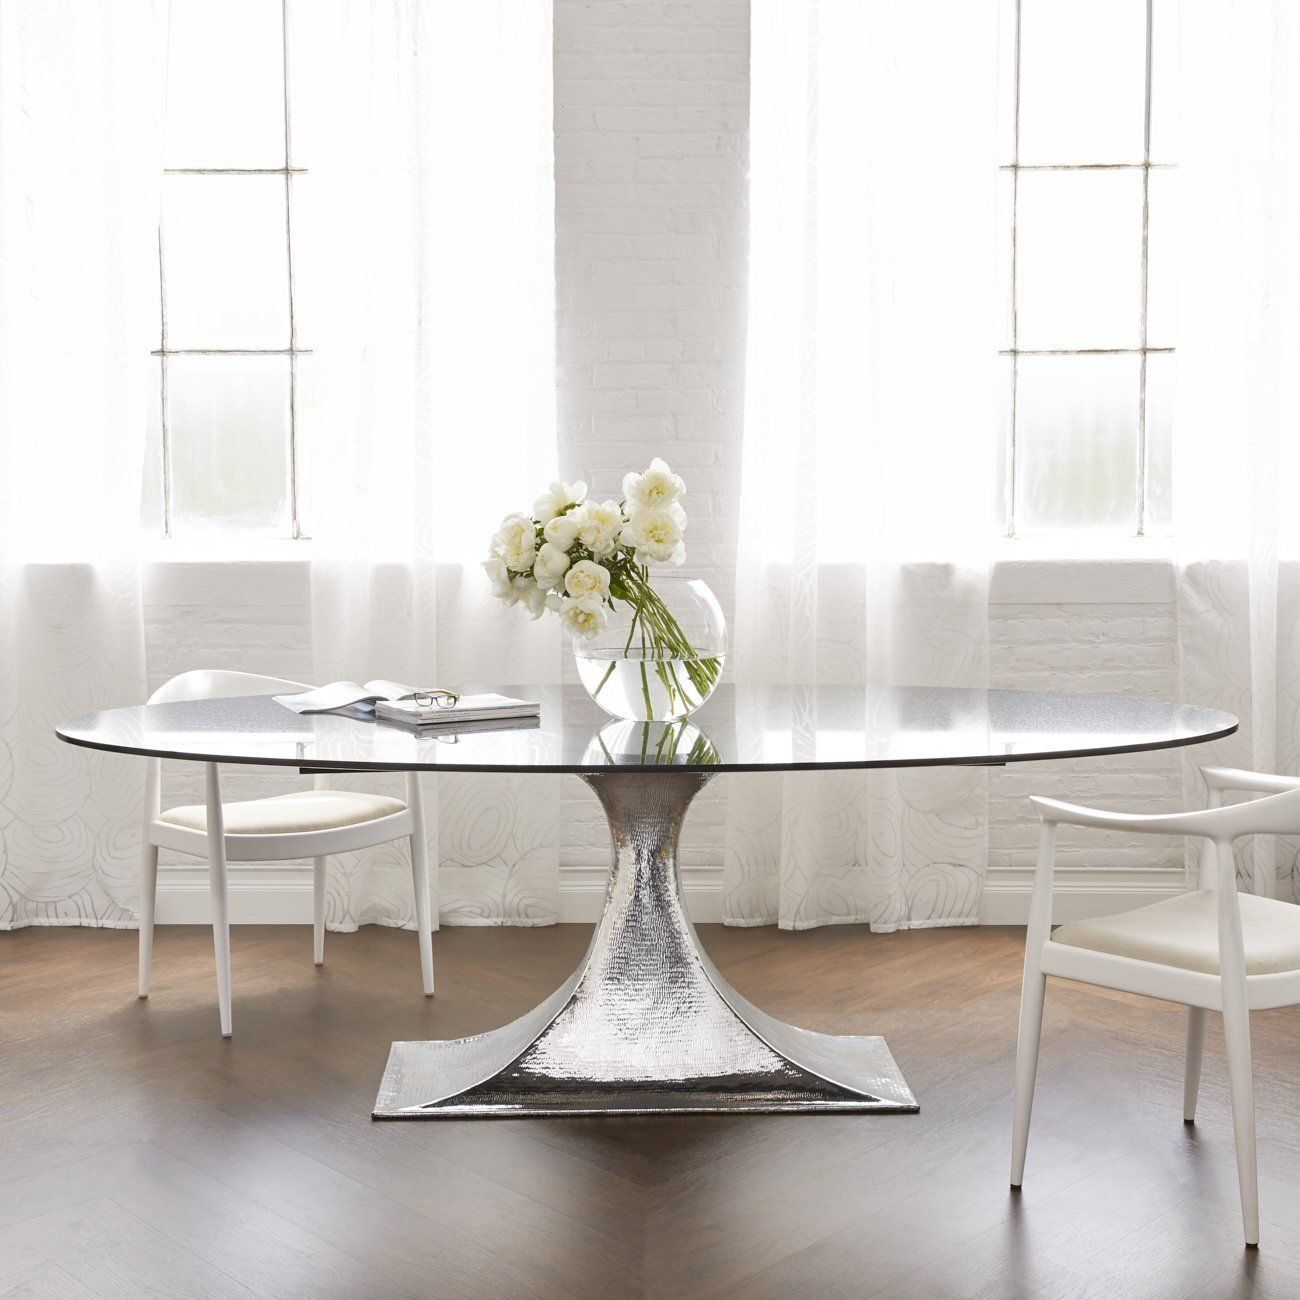 Bungalow 5 Stockholm Oval Dining Table Nickel In 2021 Oval Table Dining Oval Glass Dining Table Metal Base Dining Table